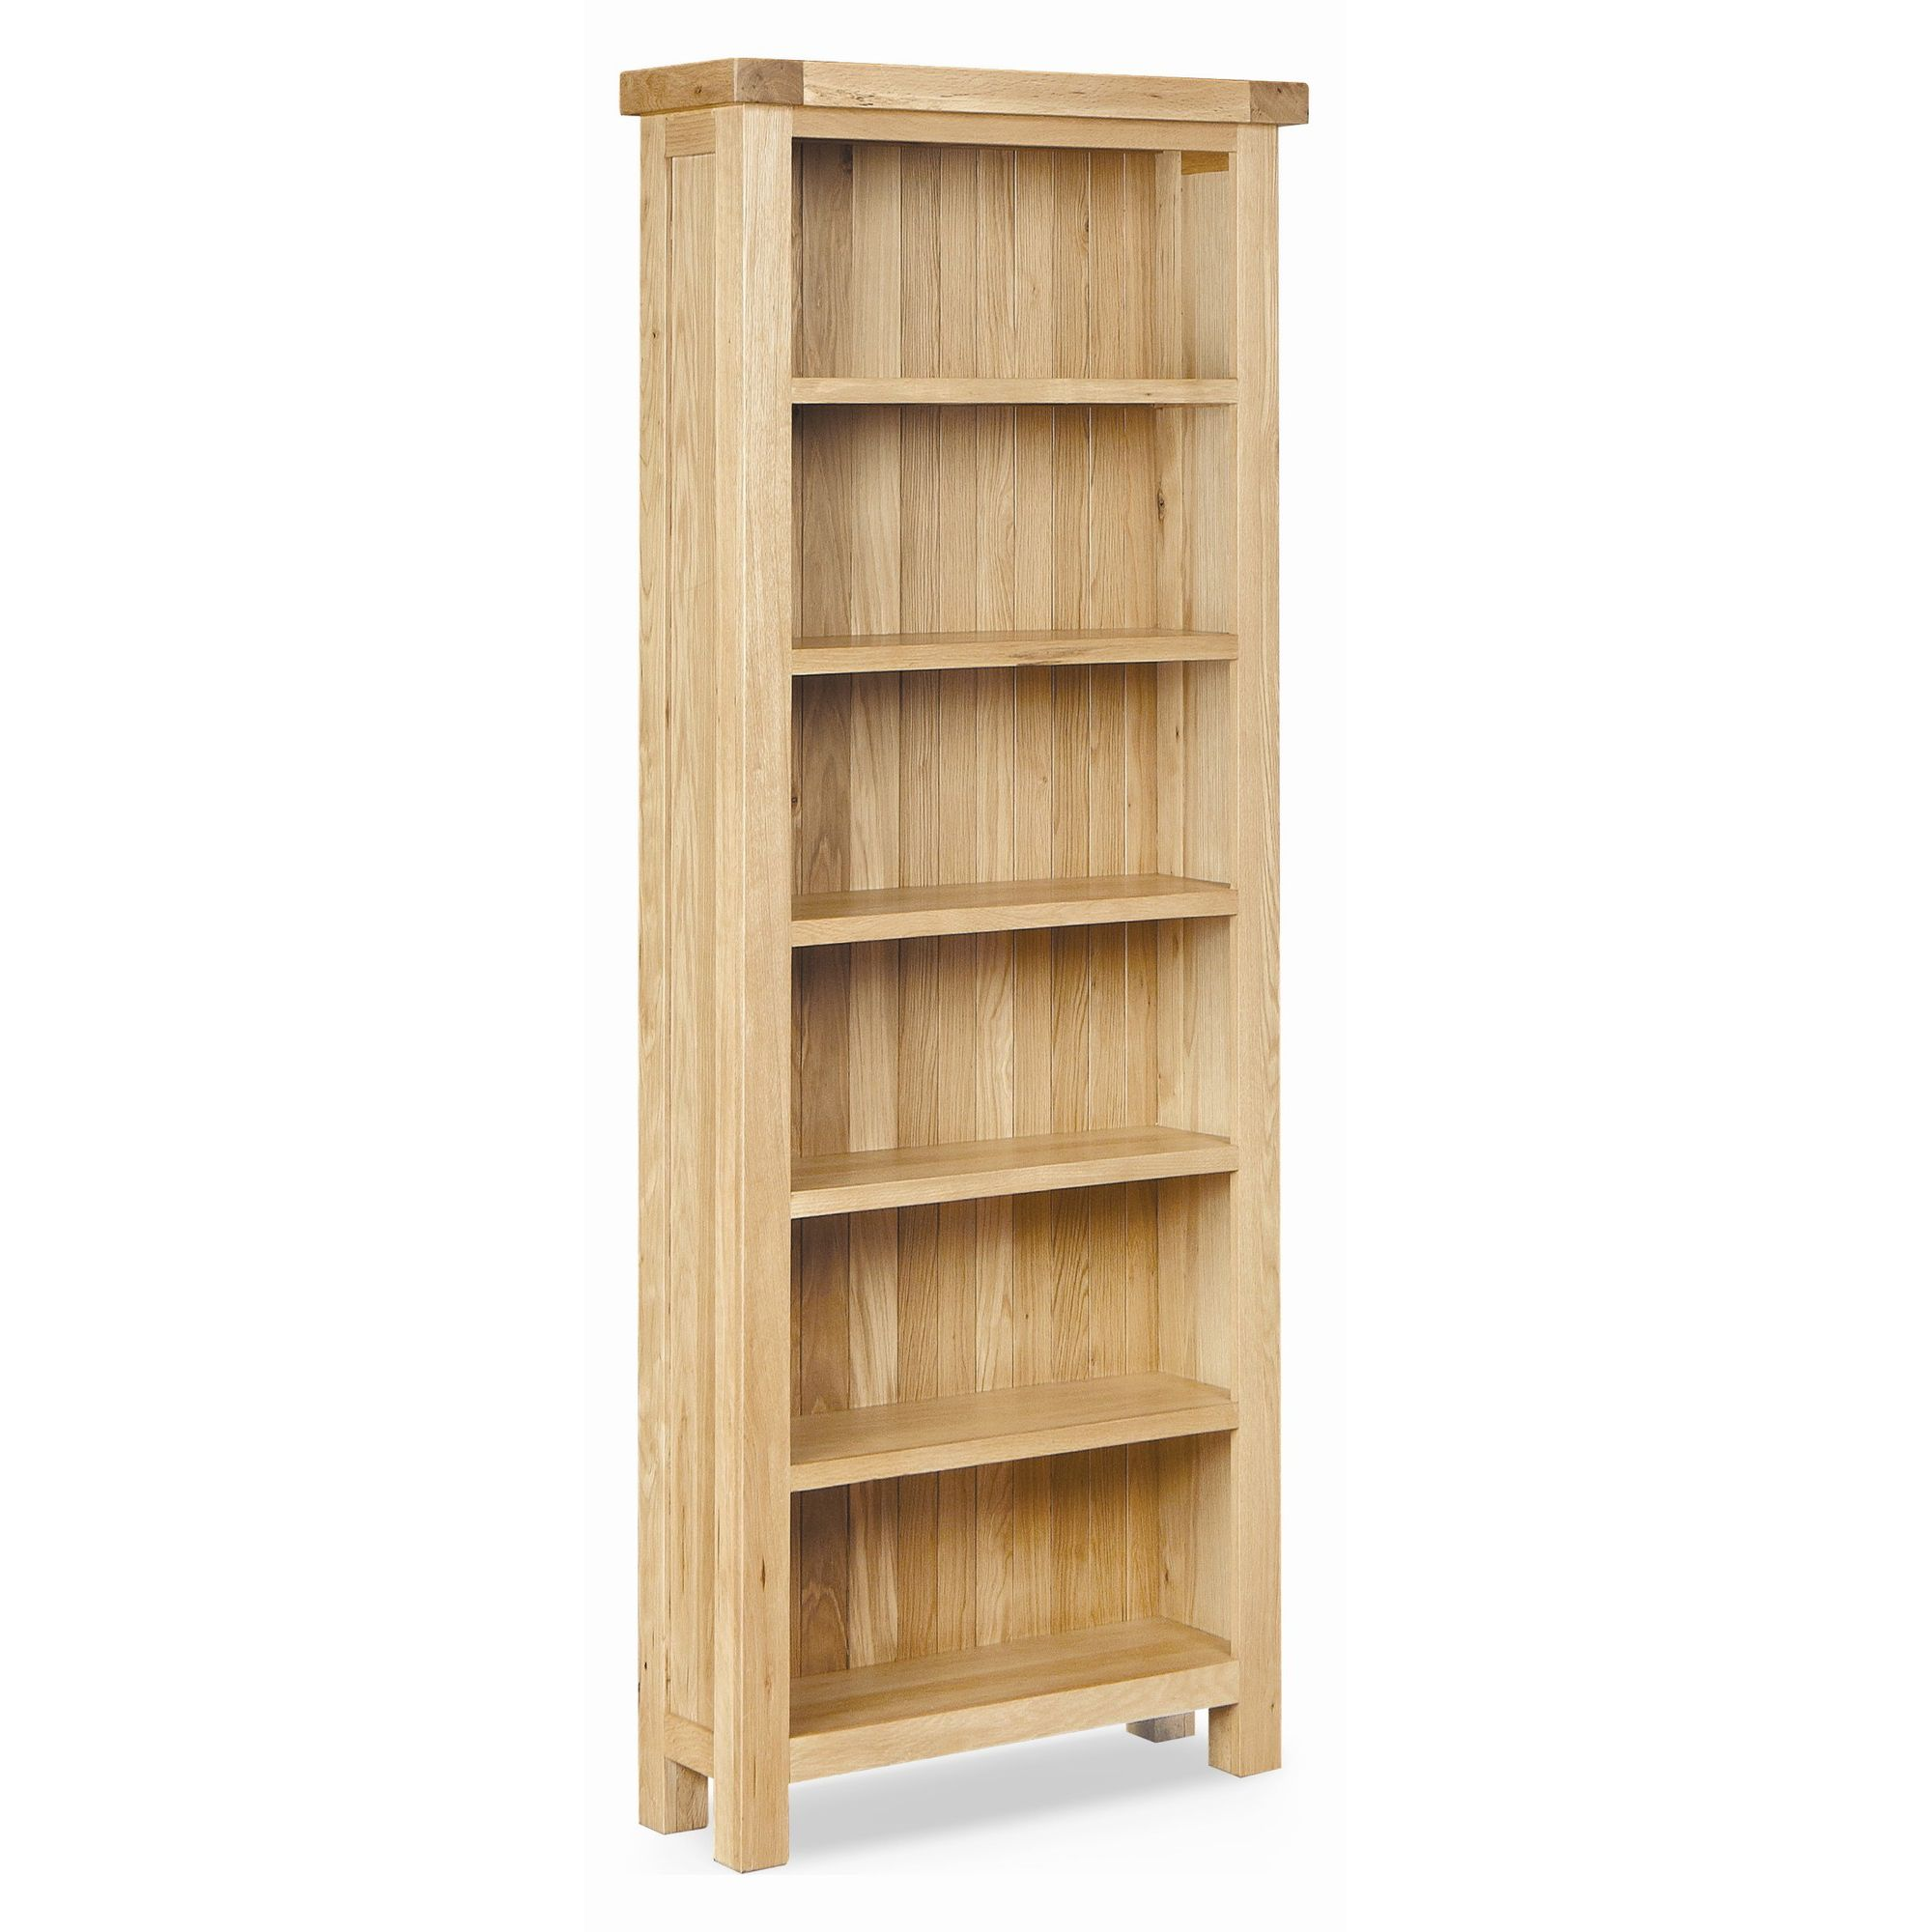 Alterton Furniture Chatsworth Slim Bookcase at Tesco Direct